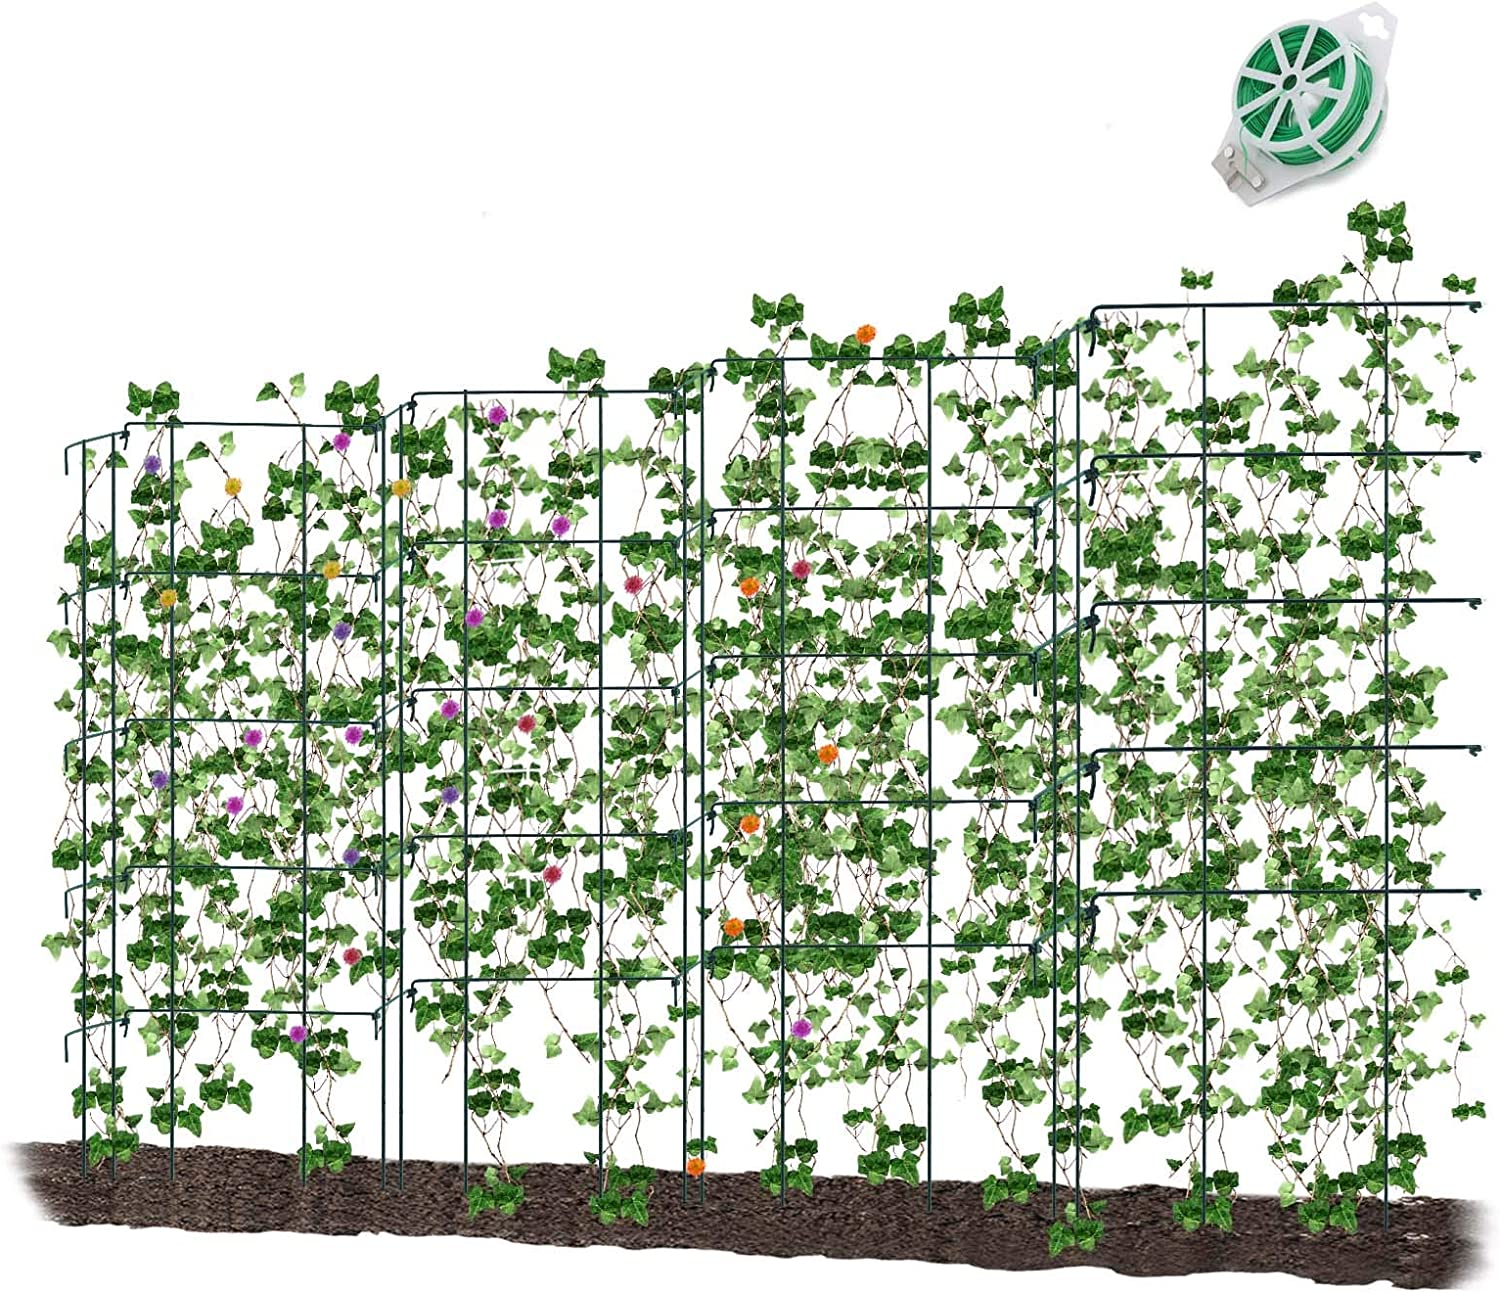 CEED4U 3 Packs 37 Inches Height Green Expandable Pea Trellis with 328 Feet Garden Twist Ties, Steel Plant Supports for Climbing Peas and Other Vining Crops